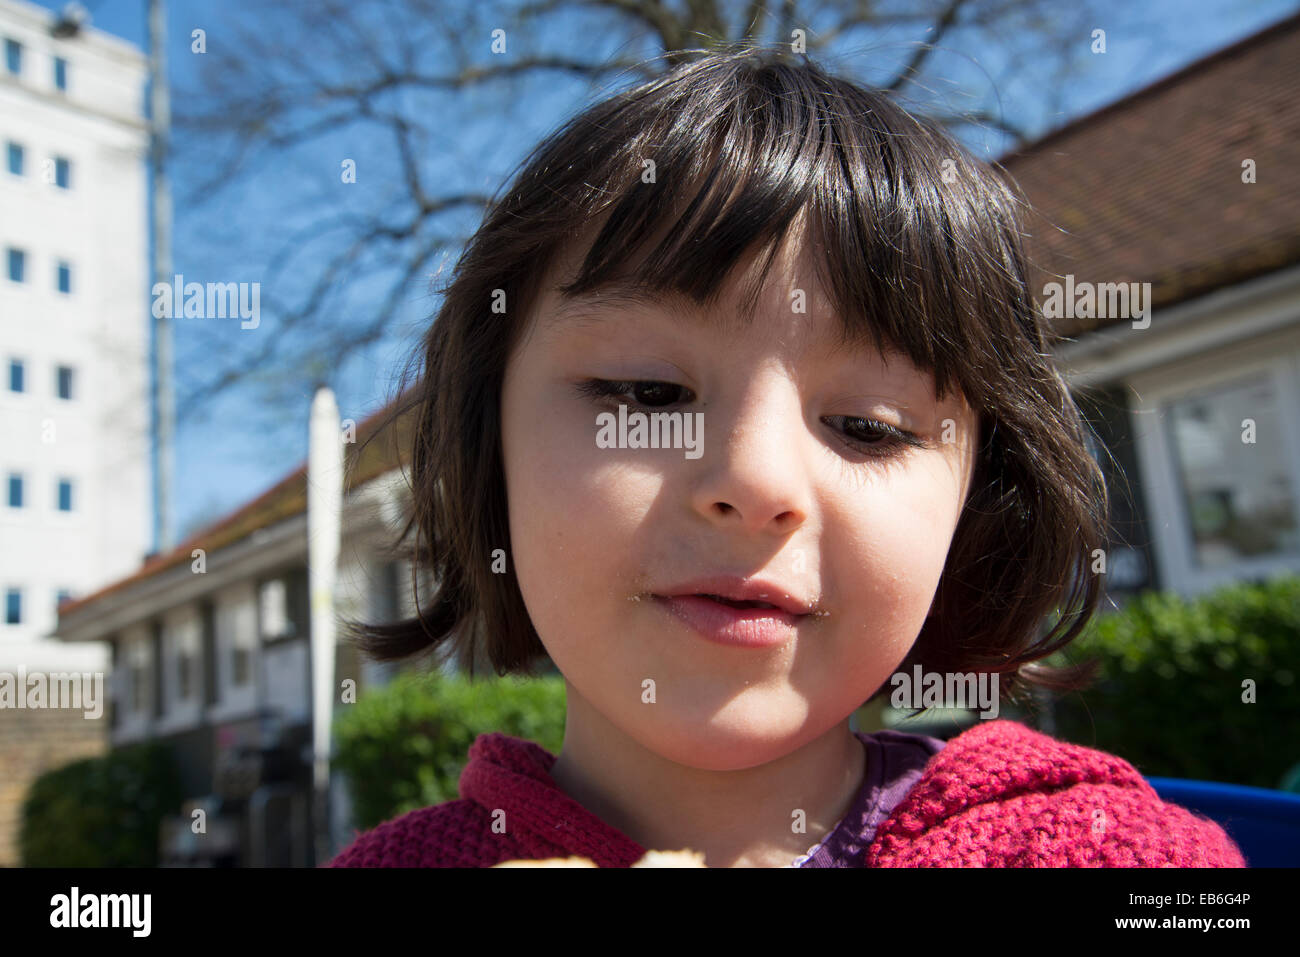 Close up of 5 year old girl's face - Stock Image